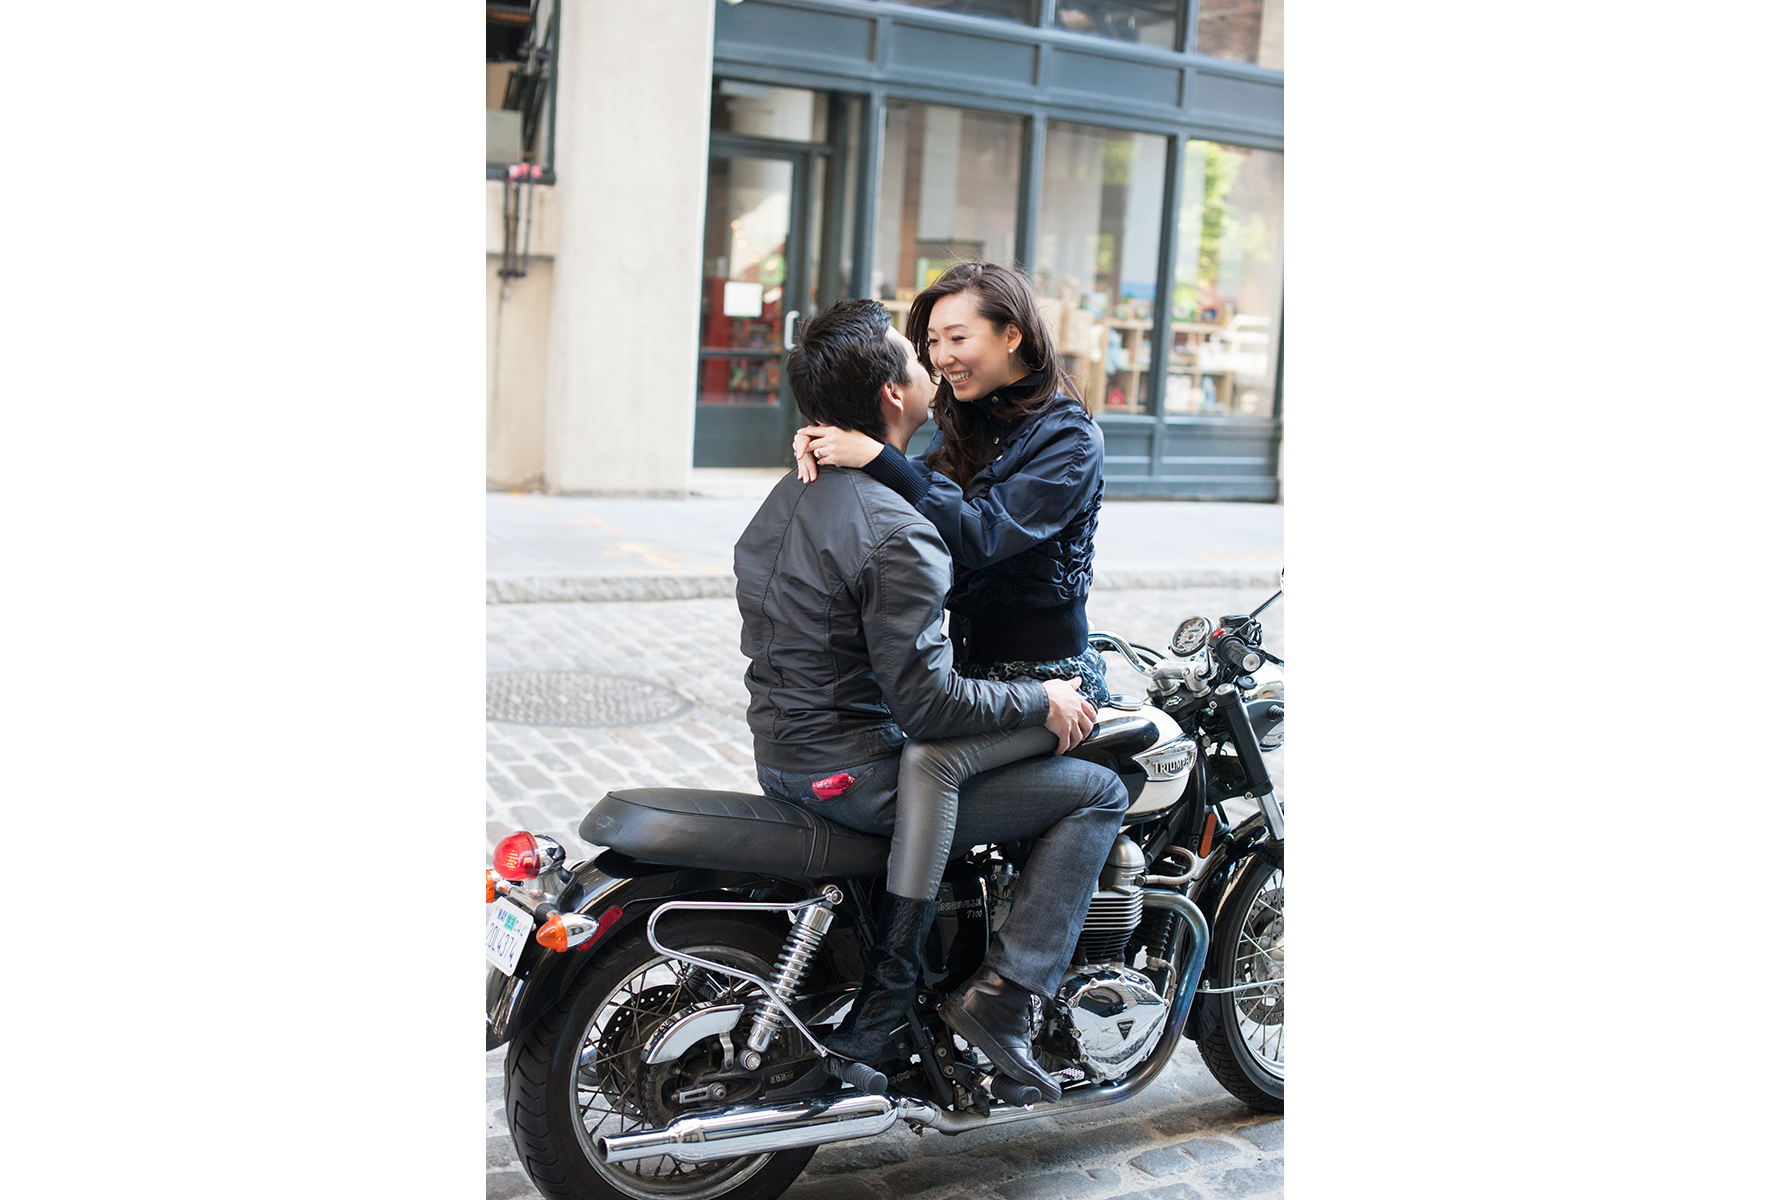 raquelreis_wedding_photography_engagements_014.png